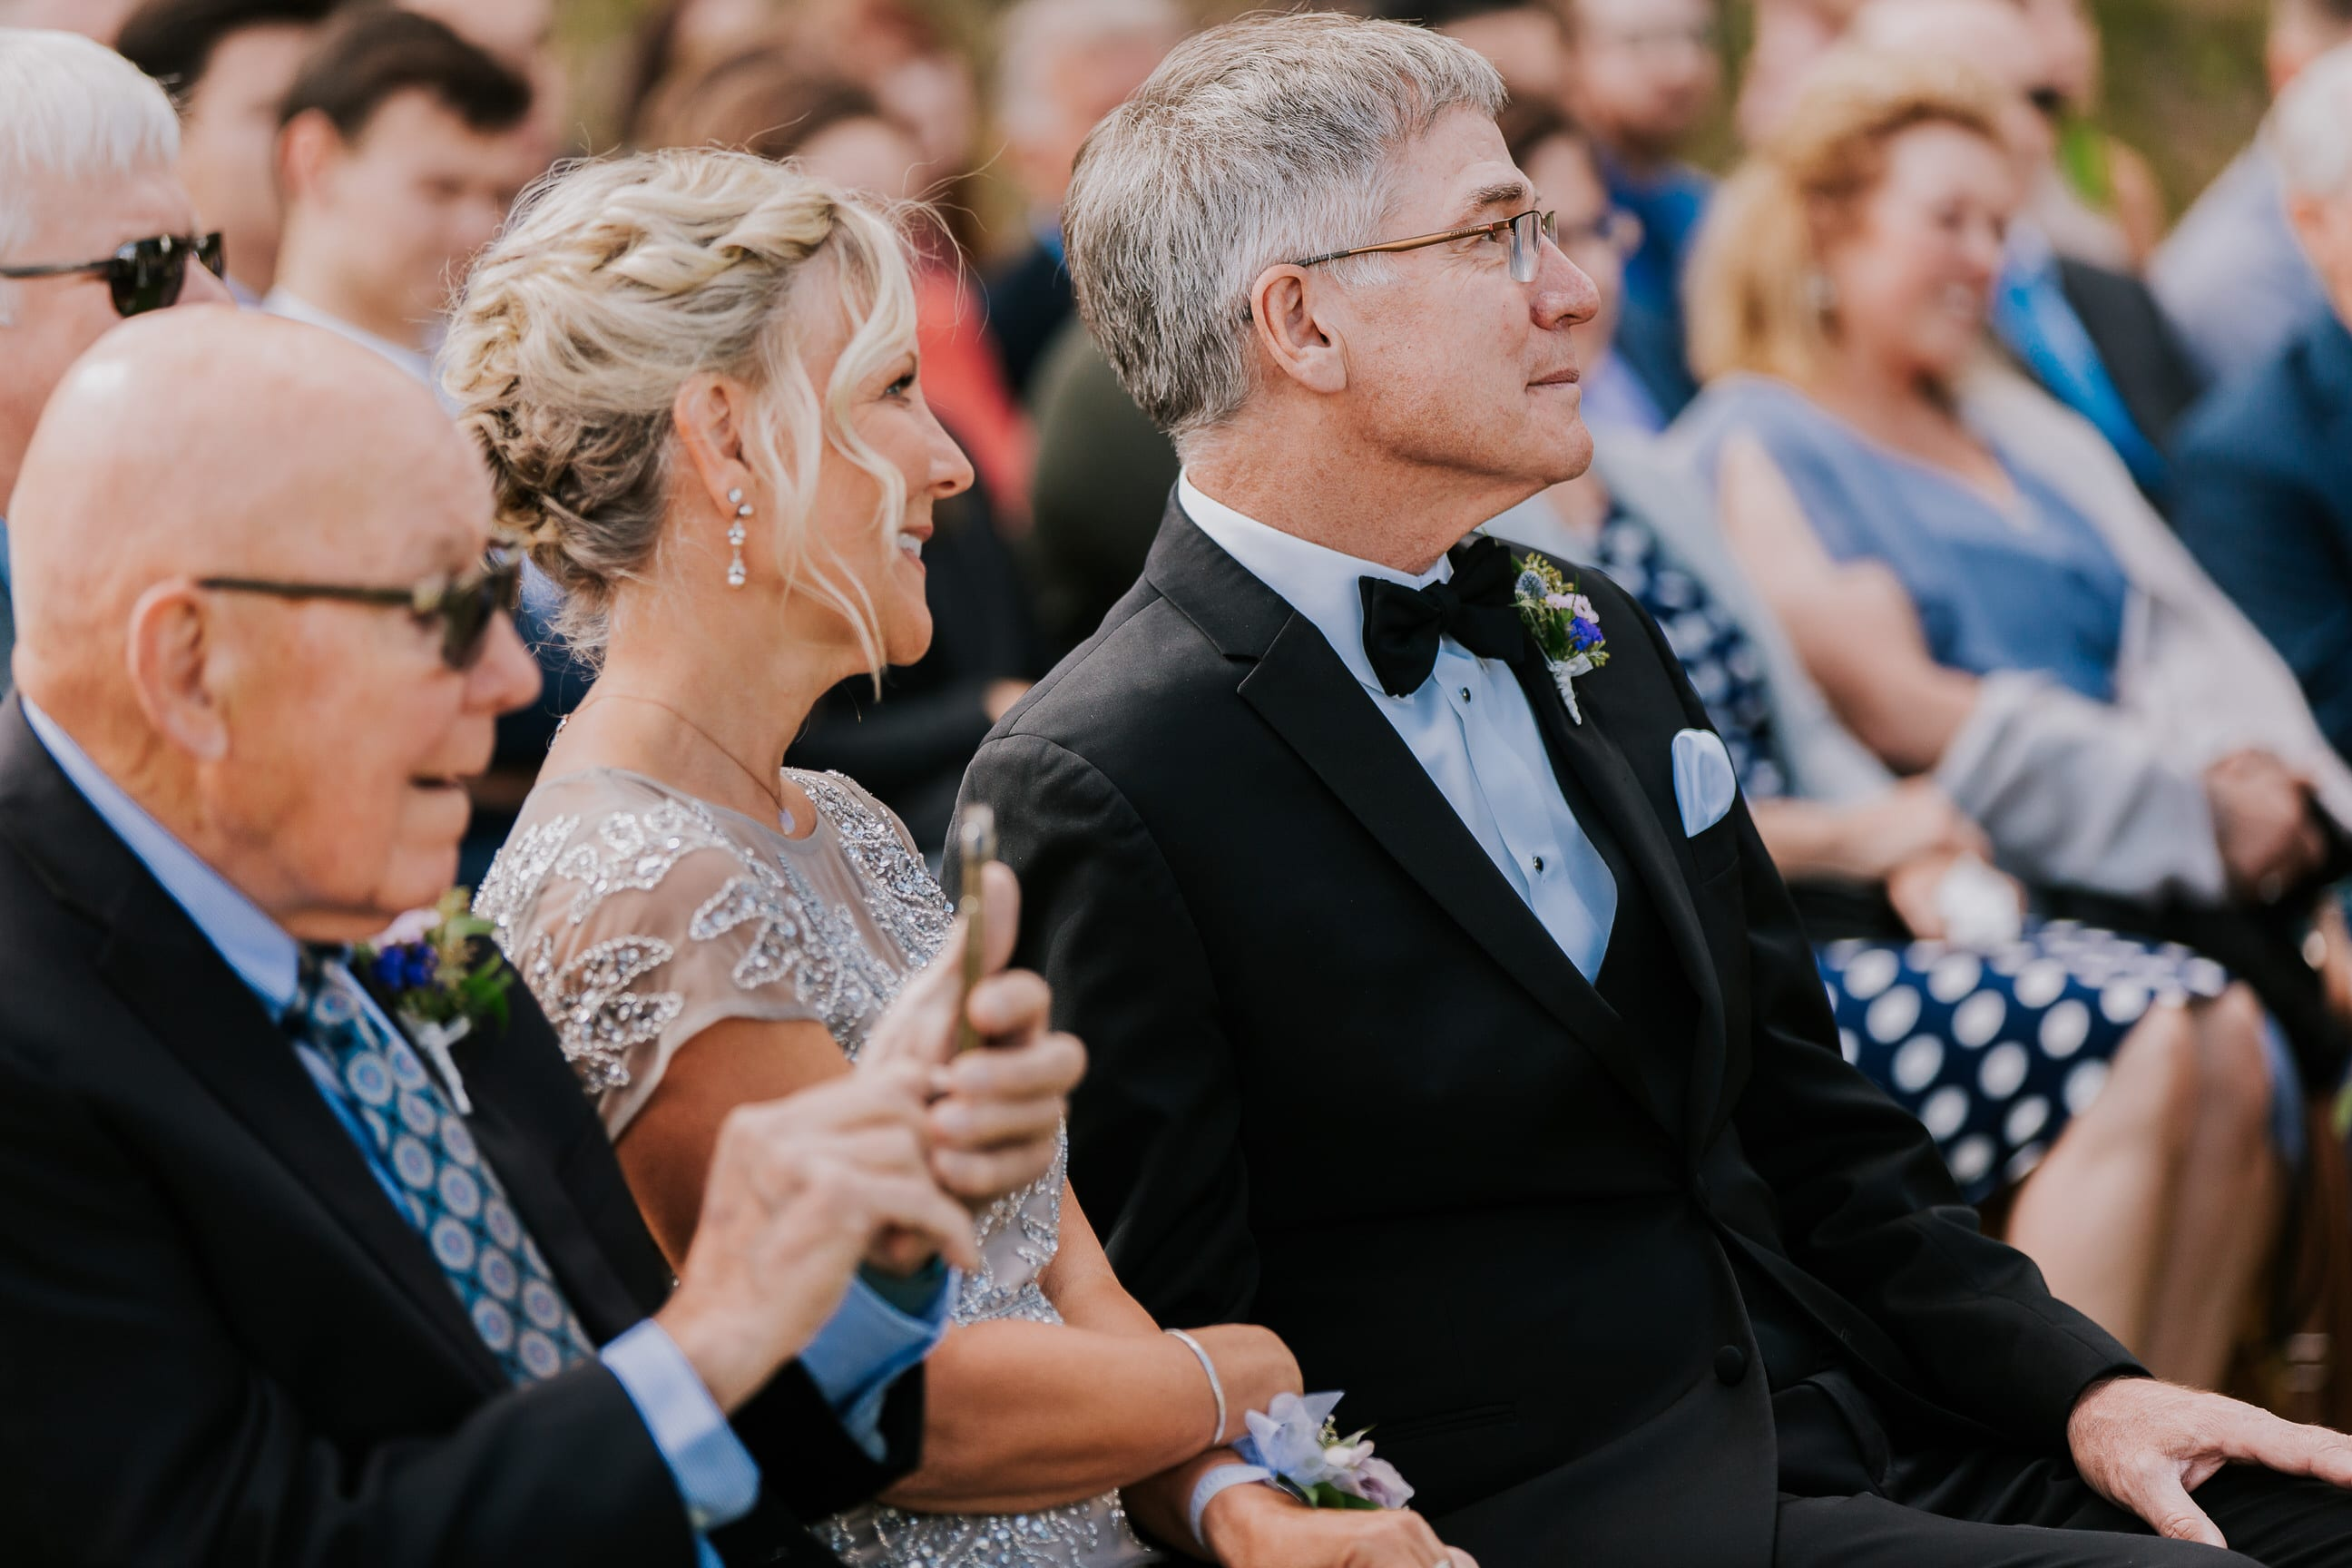 guests watch wedding ceremony